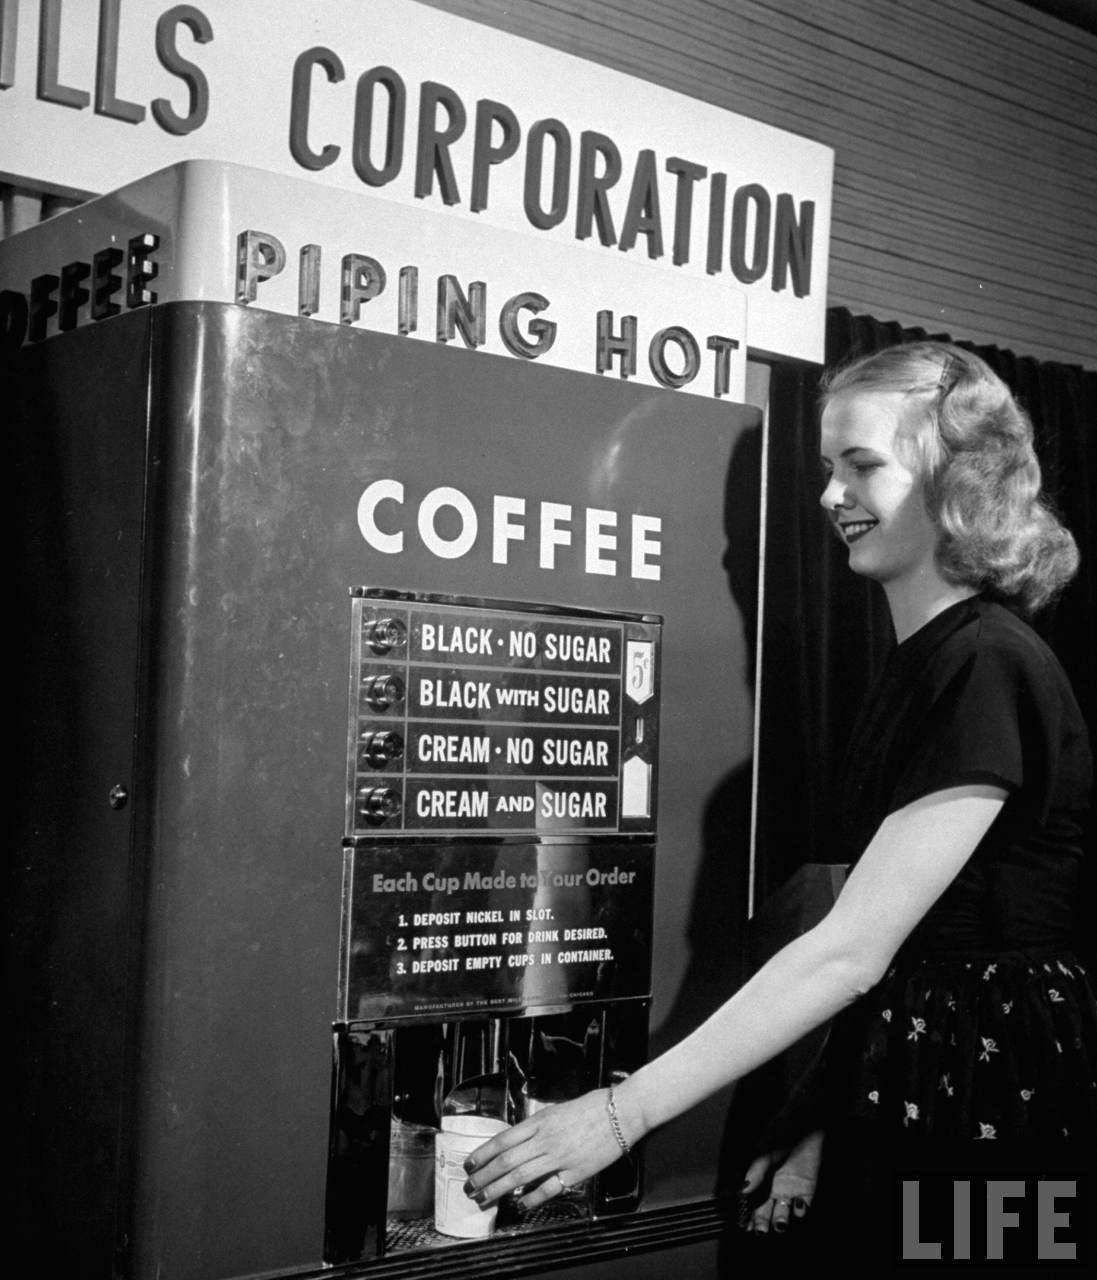 Photograph of a vintage coin-operated coffee machine, 1947